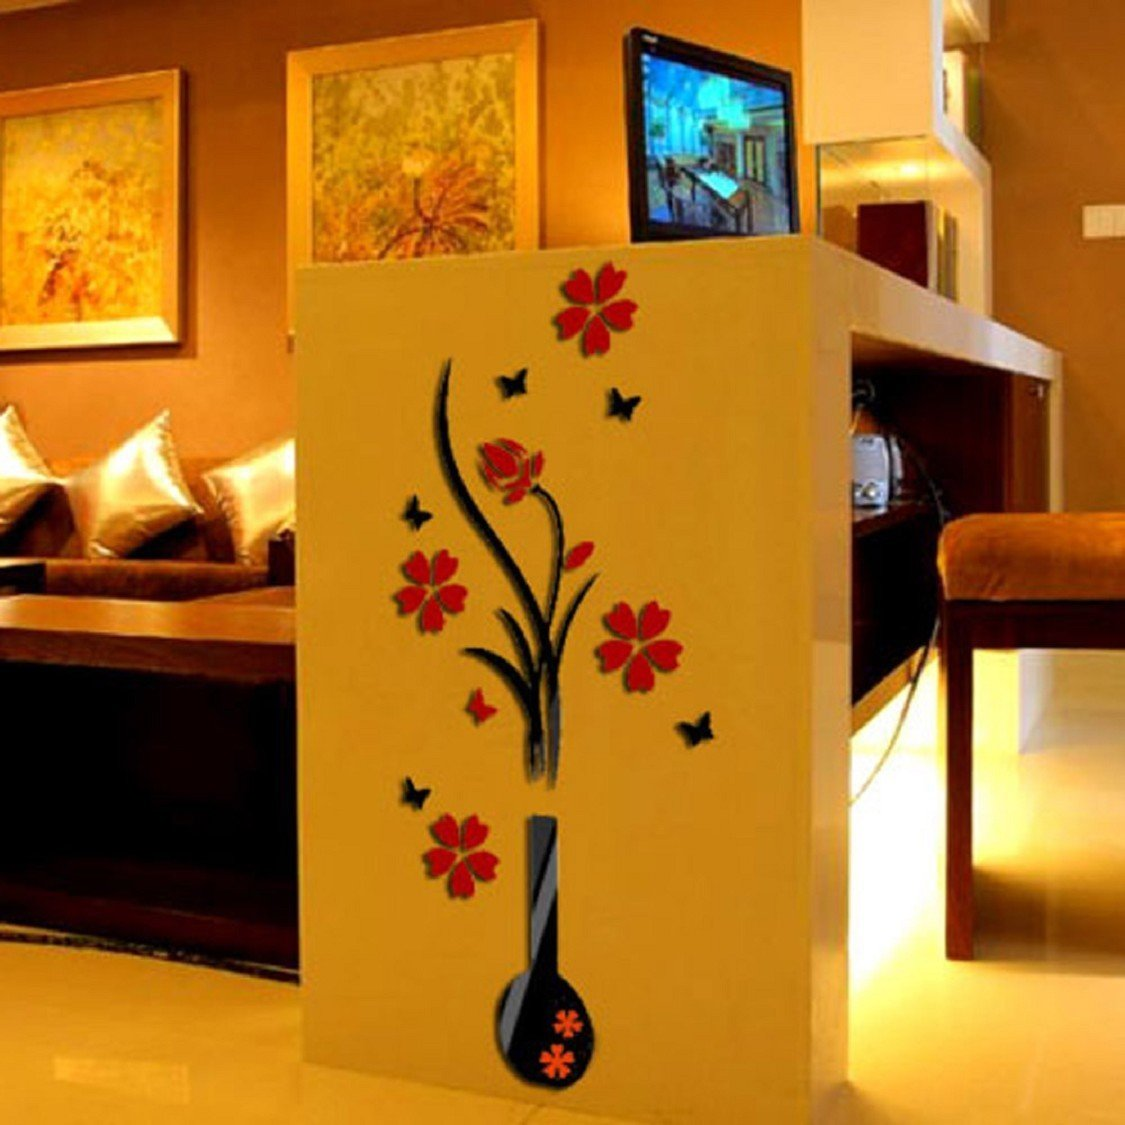 3D Wall Stickers, Ikevan DIY Vase Flower Tree Crystal Arcylic 3D ...